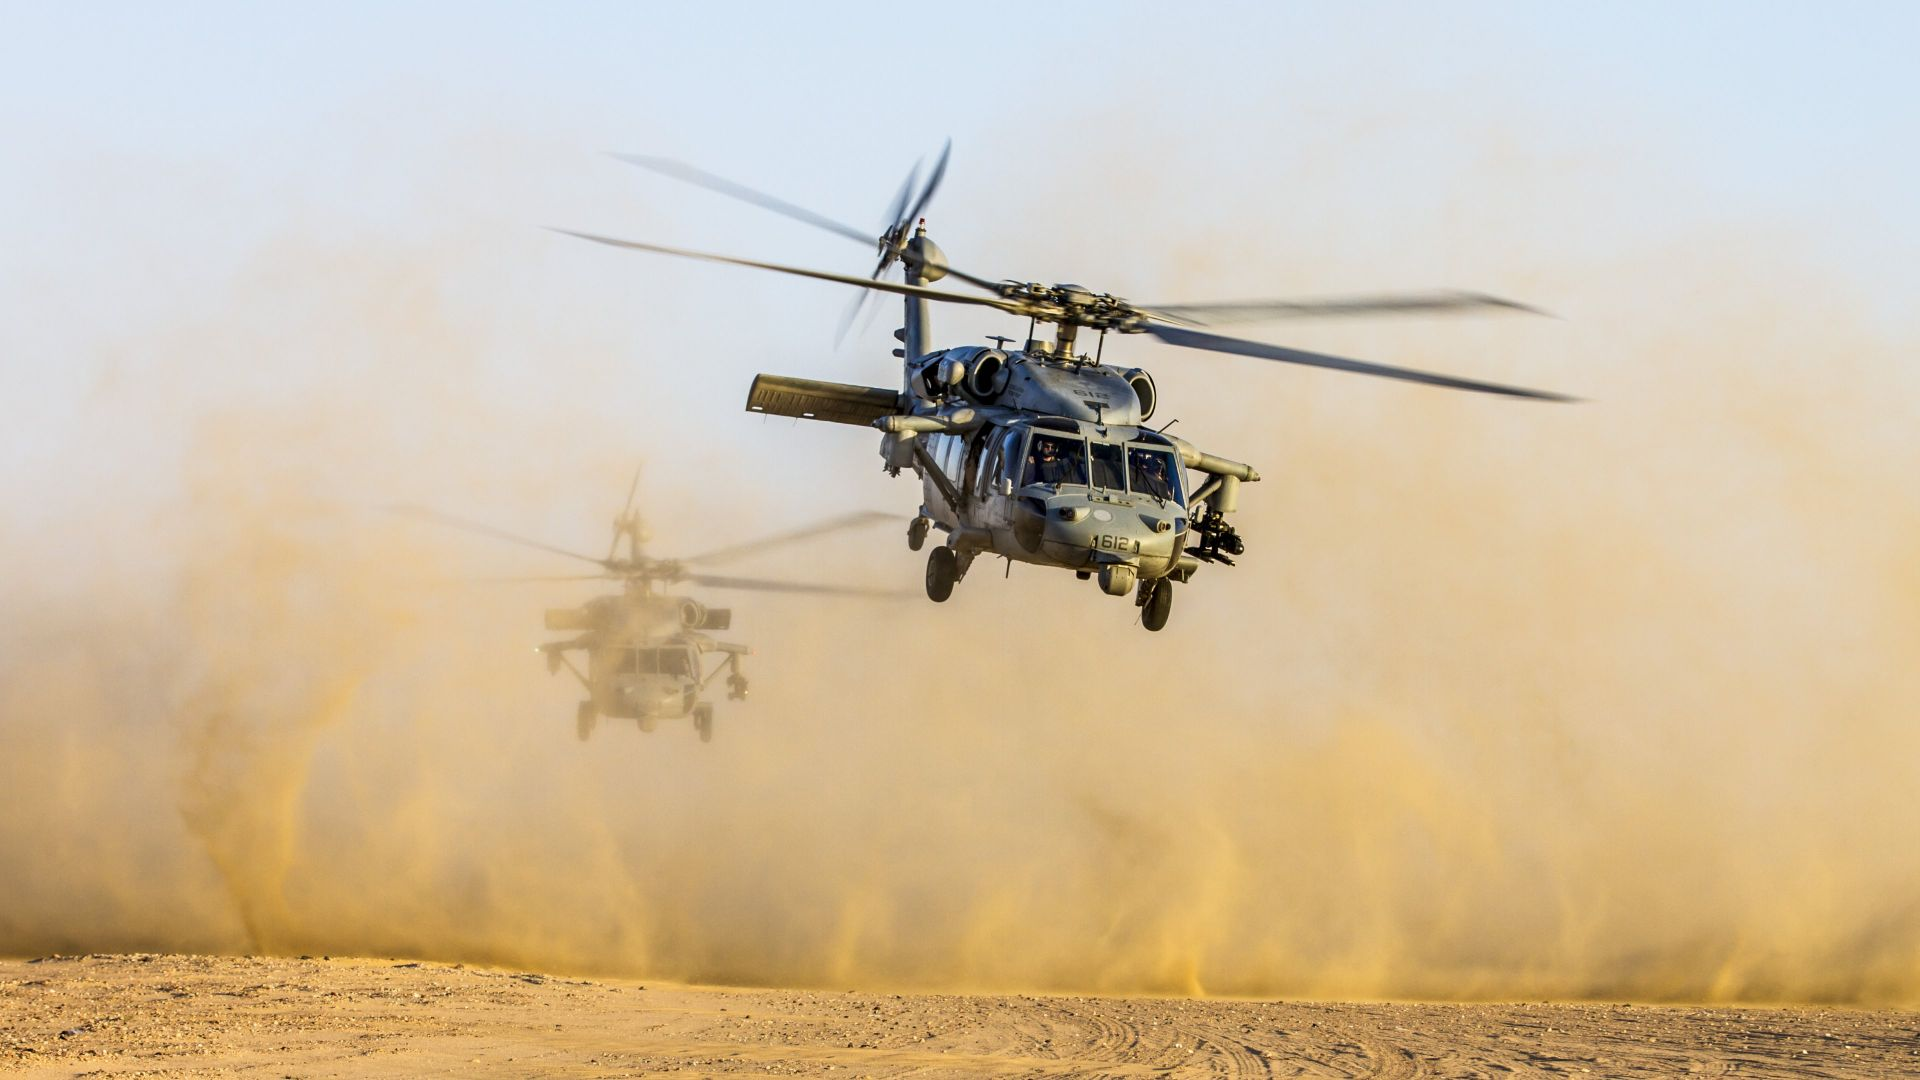 Military Helicopter 4k Hd Desktop Wallpaper For 4k Ultra: Wallpaper Helicopter, Black Hawk, US Army, 4k, Military #17768